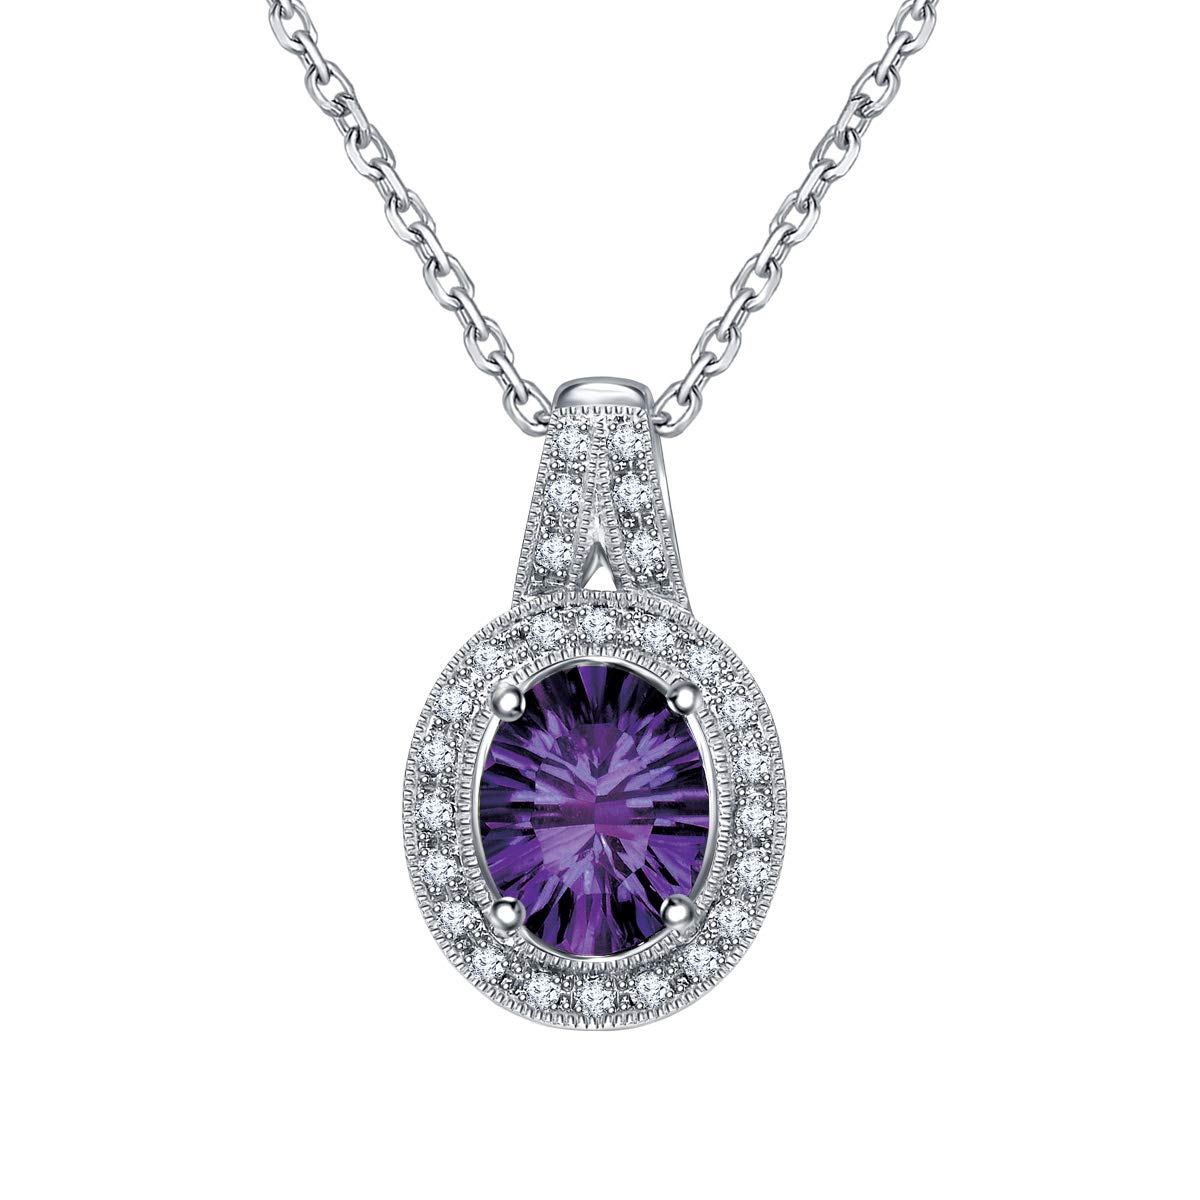 Ringjewels 0.13 Ct Amethyst /& Sim Diamond Halo Pendant Necklace with 18 Chain in 14K White Gold Plated